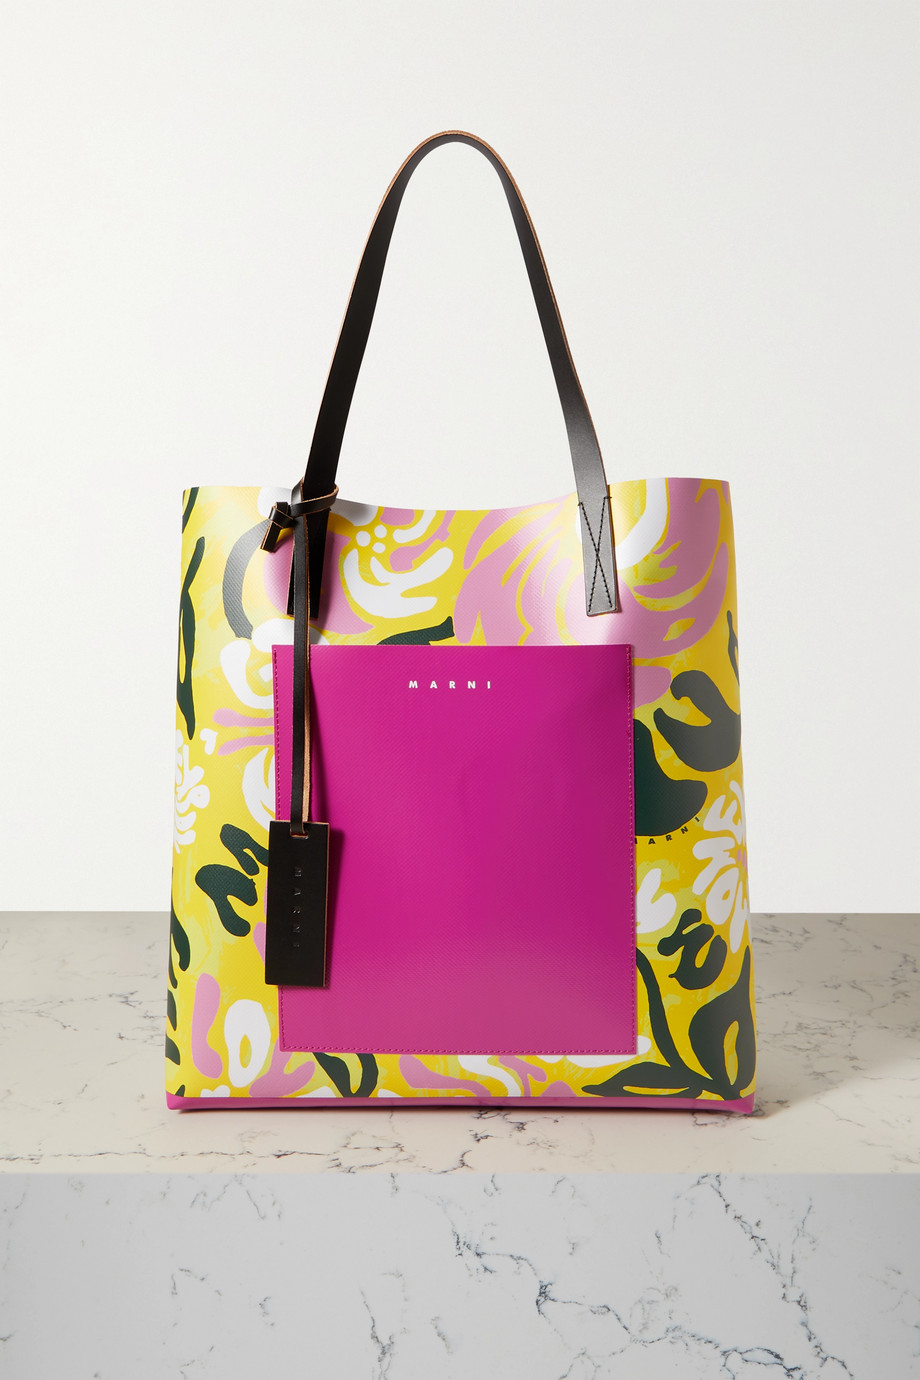 Marni Leather-trimmed printed coated-PVC tote